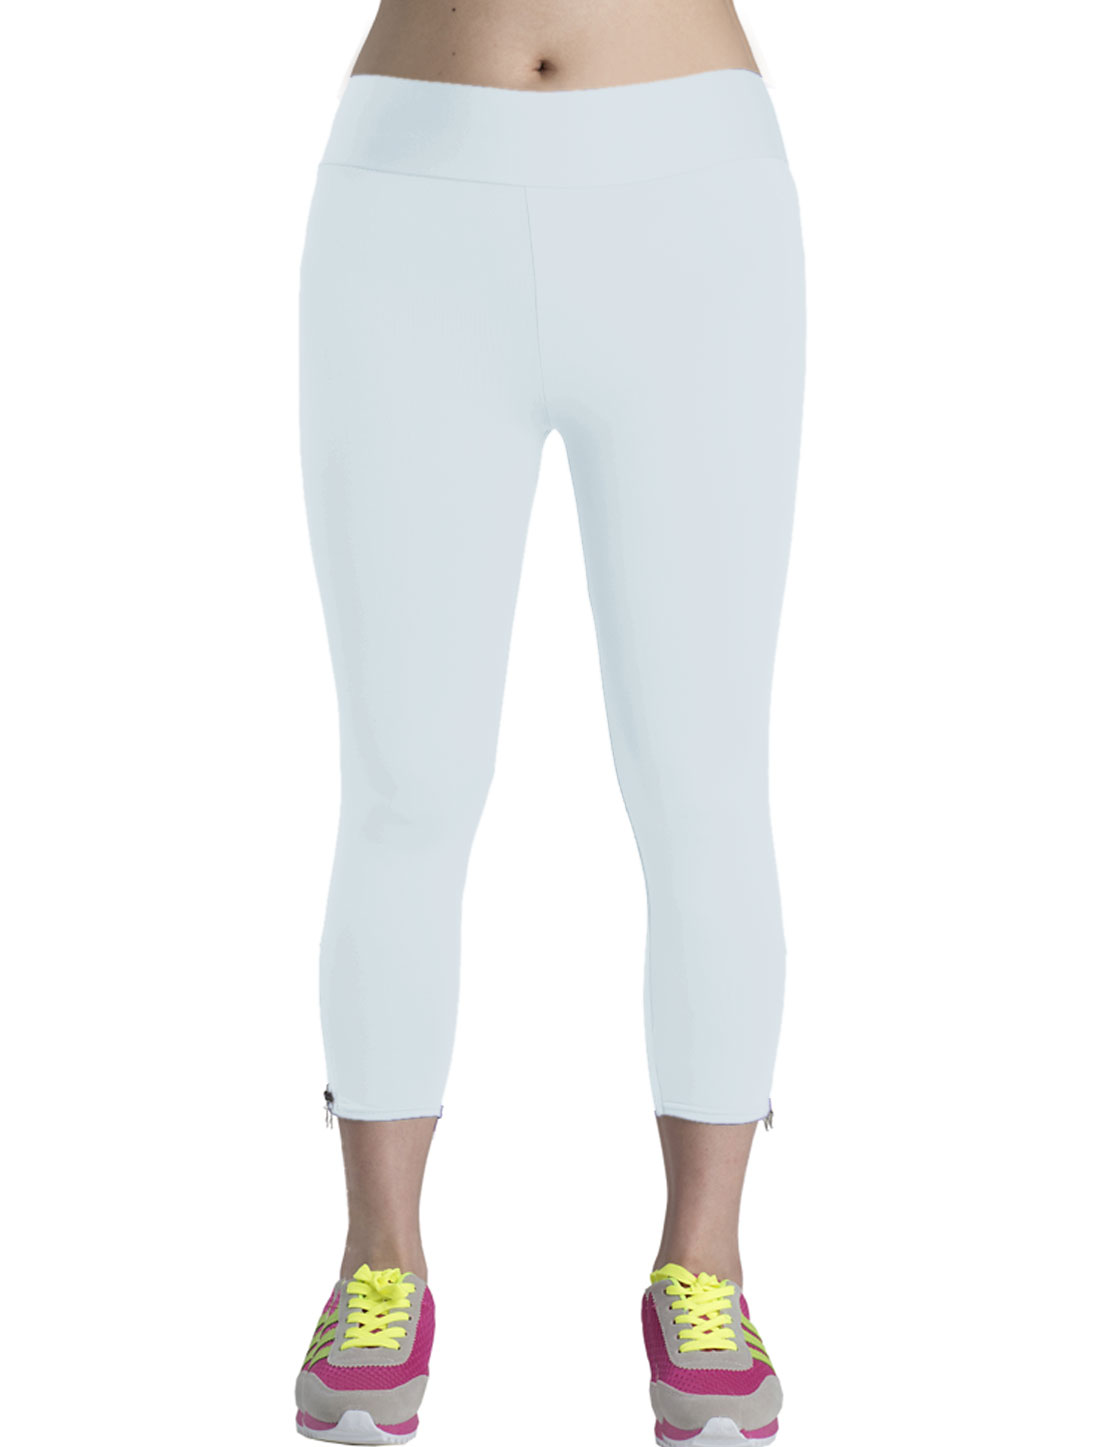 Lady Elestic Zipper Side Fashionable Capri Pants White M